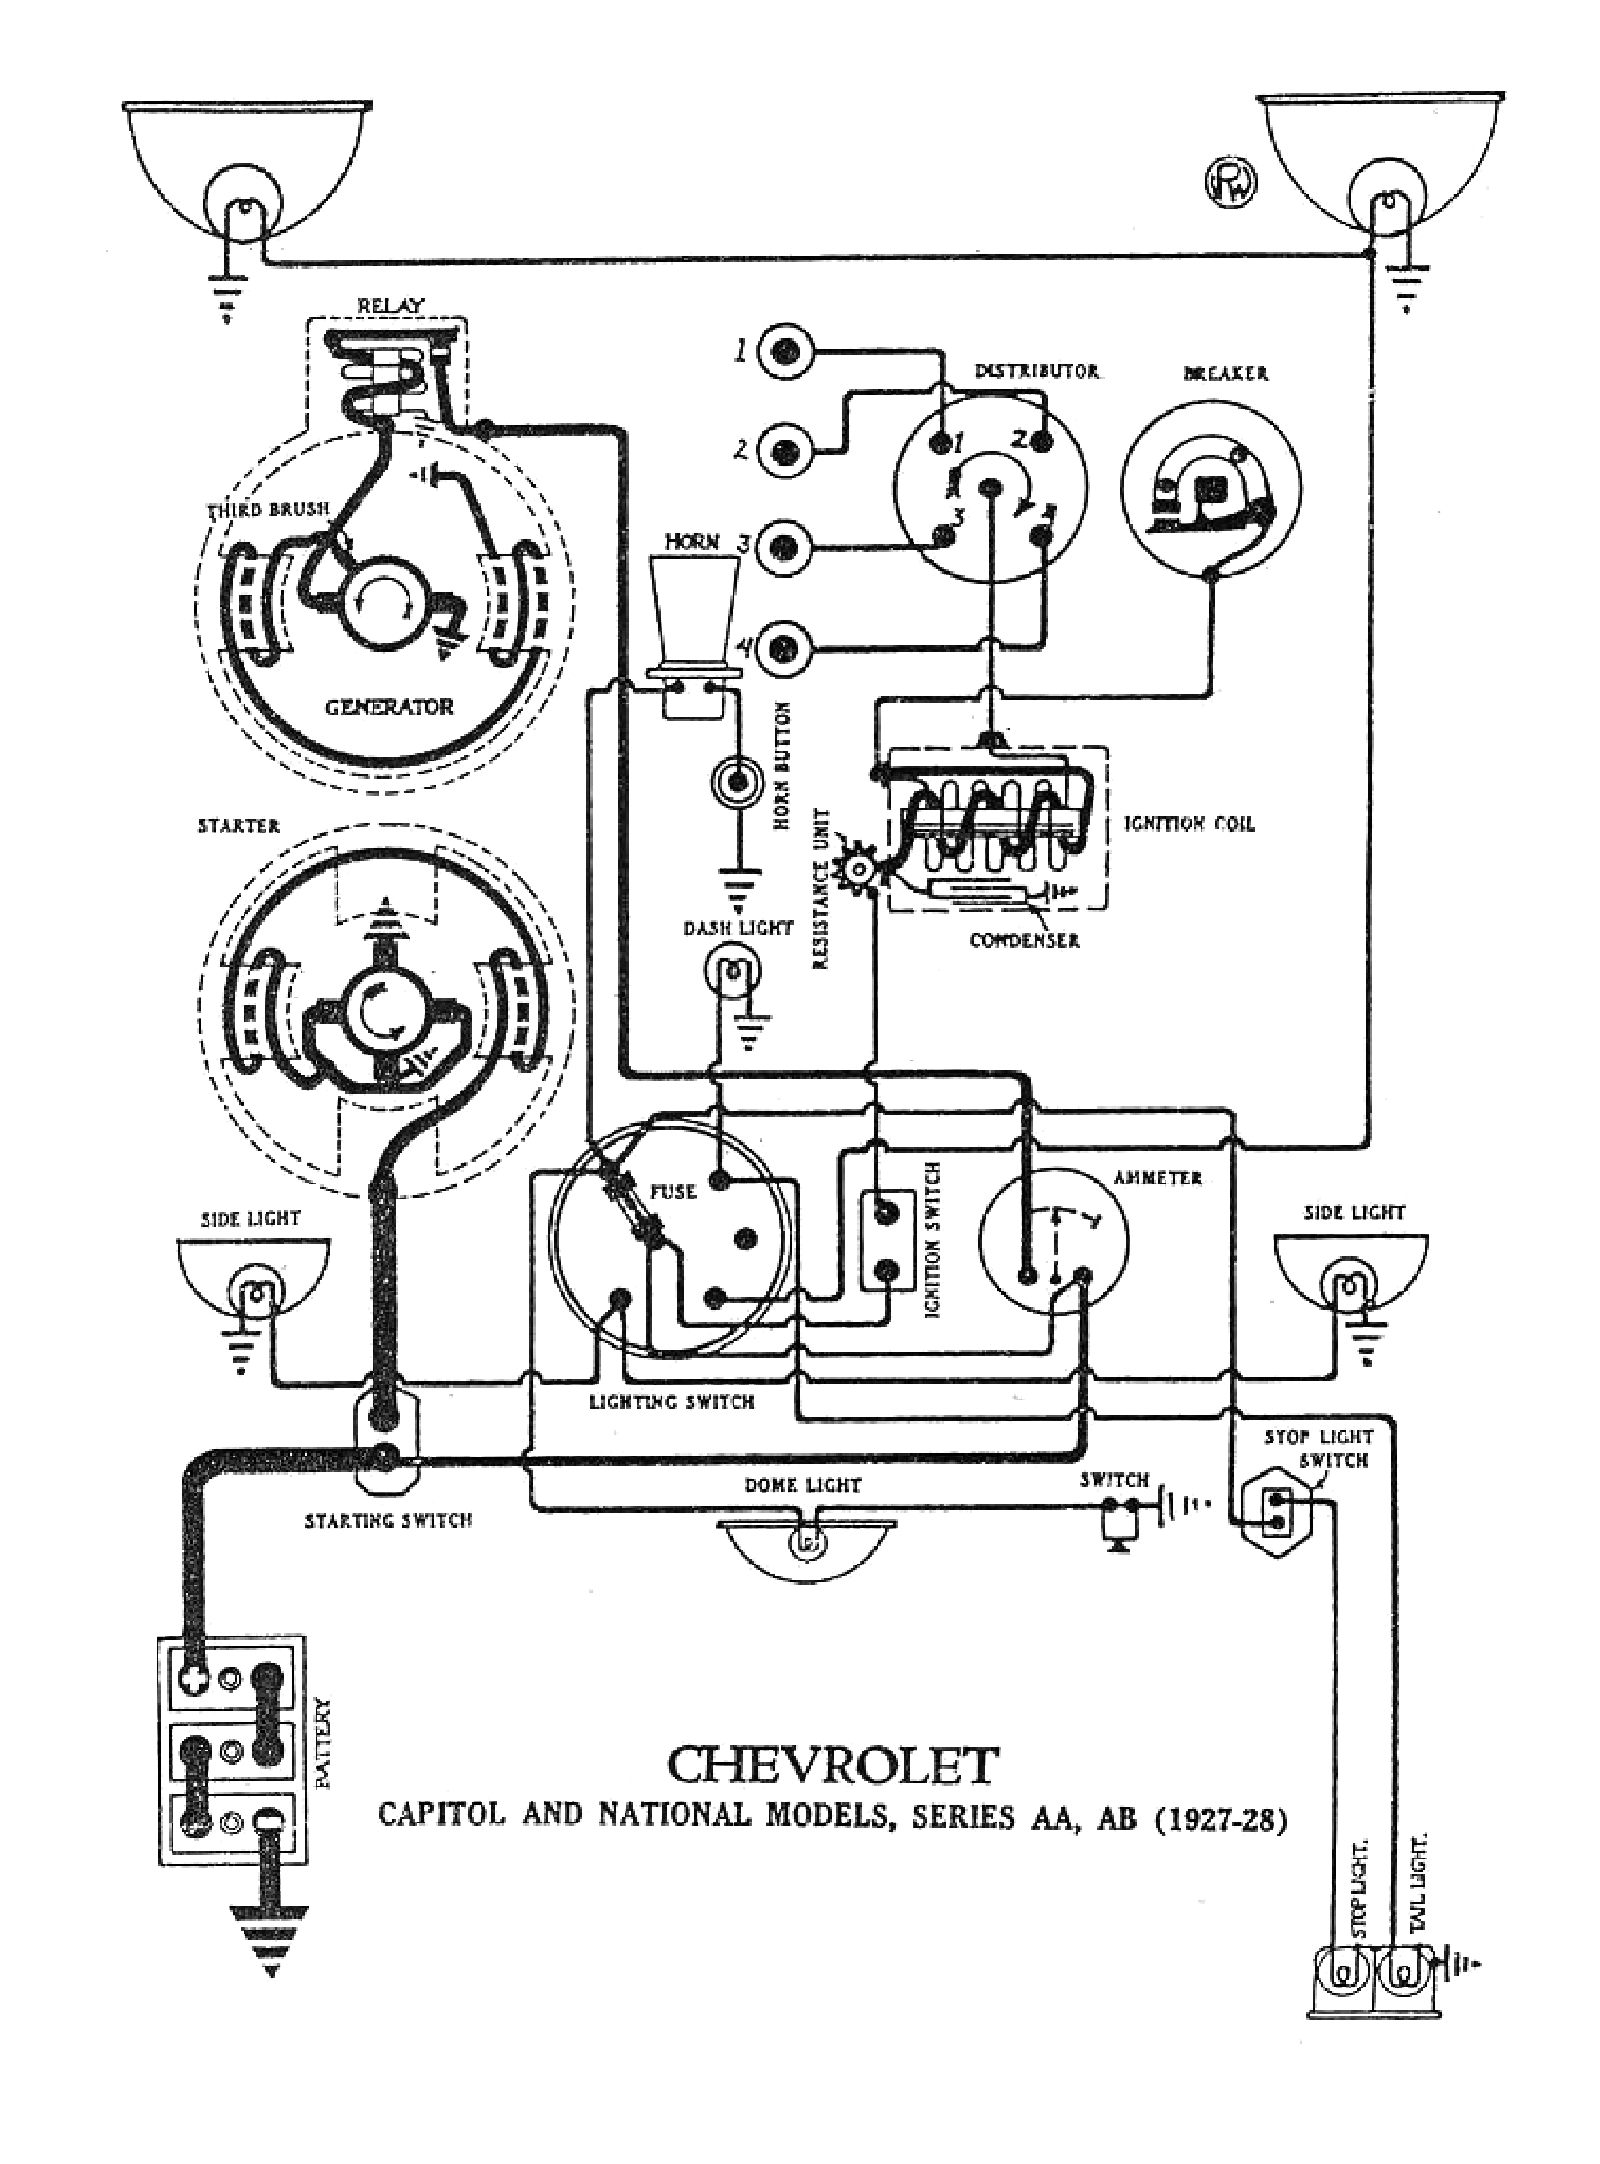 model wiring diagram chevy wiring diagrams 1927 capitol national models 1928 1928 wiring diagrams